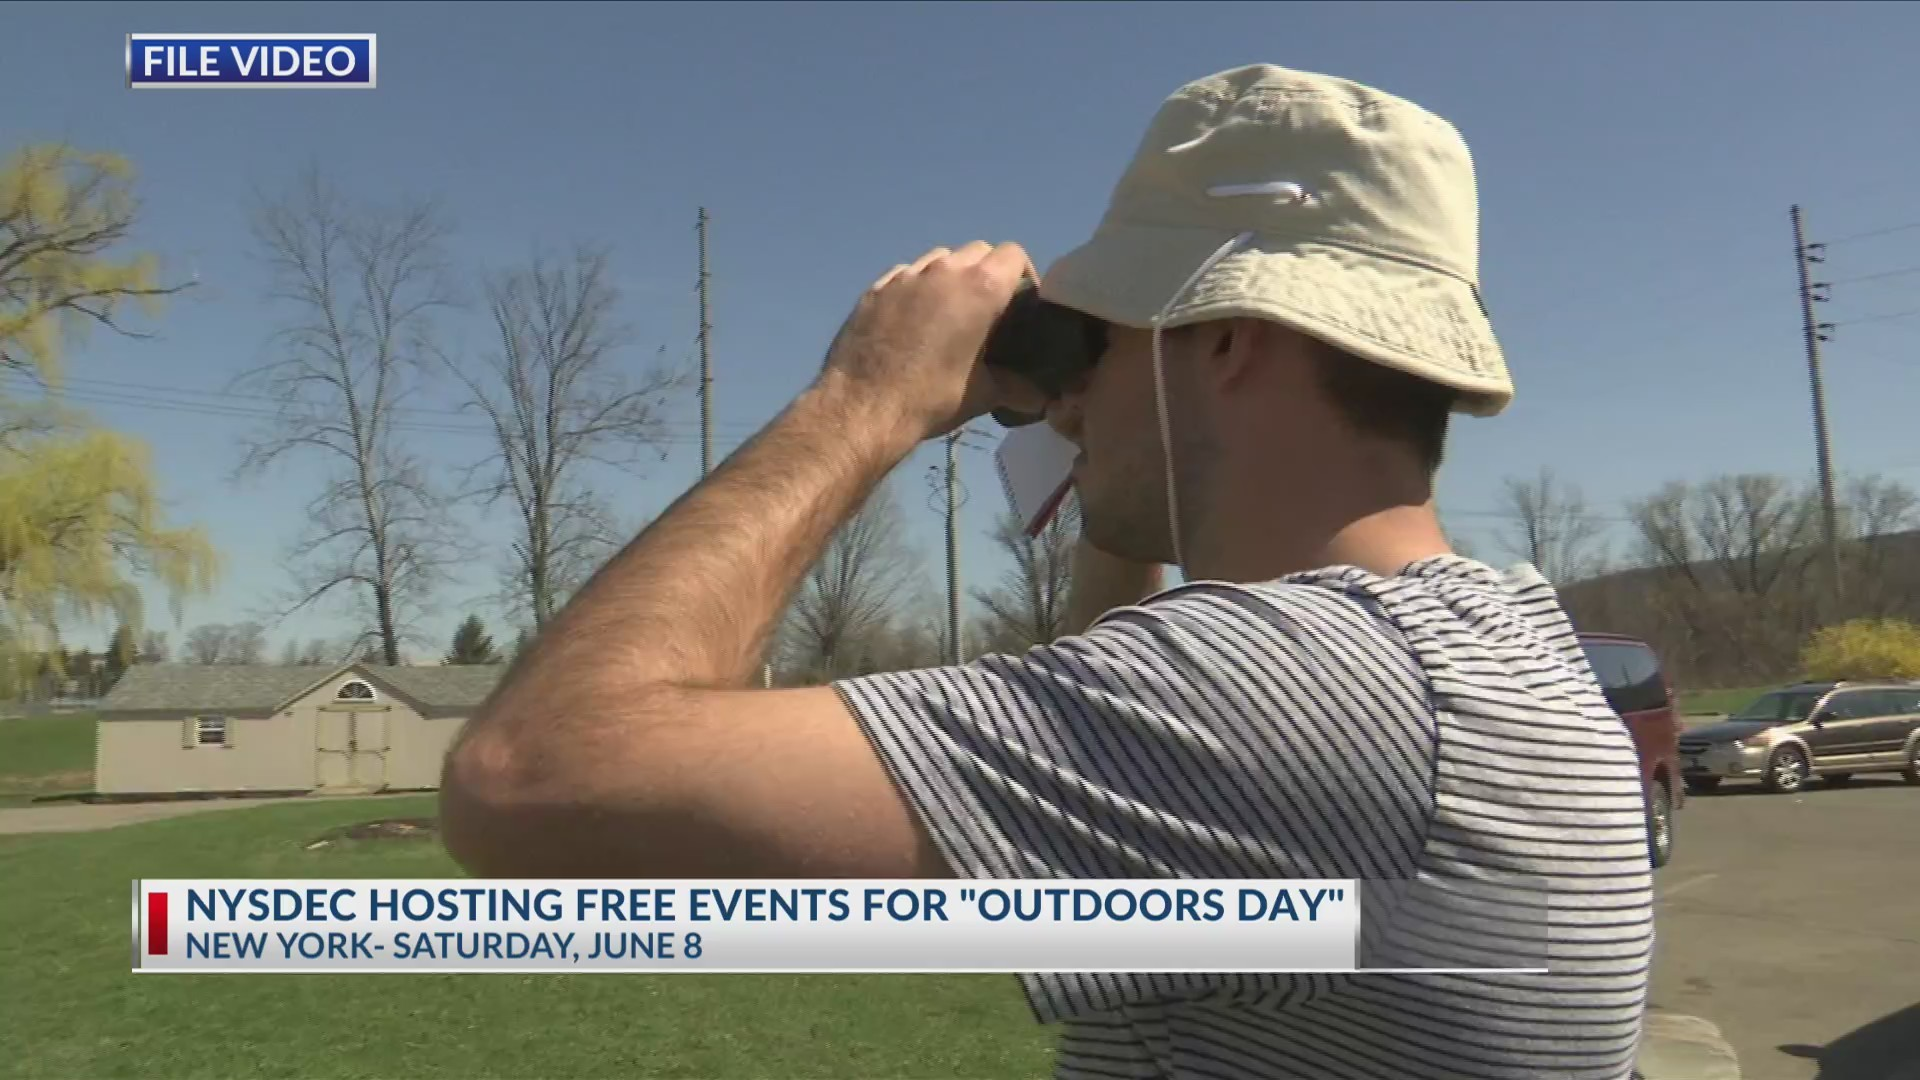 ___Outdoors_Day____events_planned_across_0_20190519232425